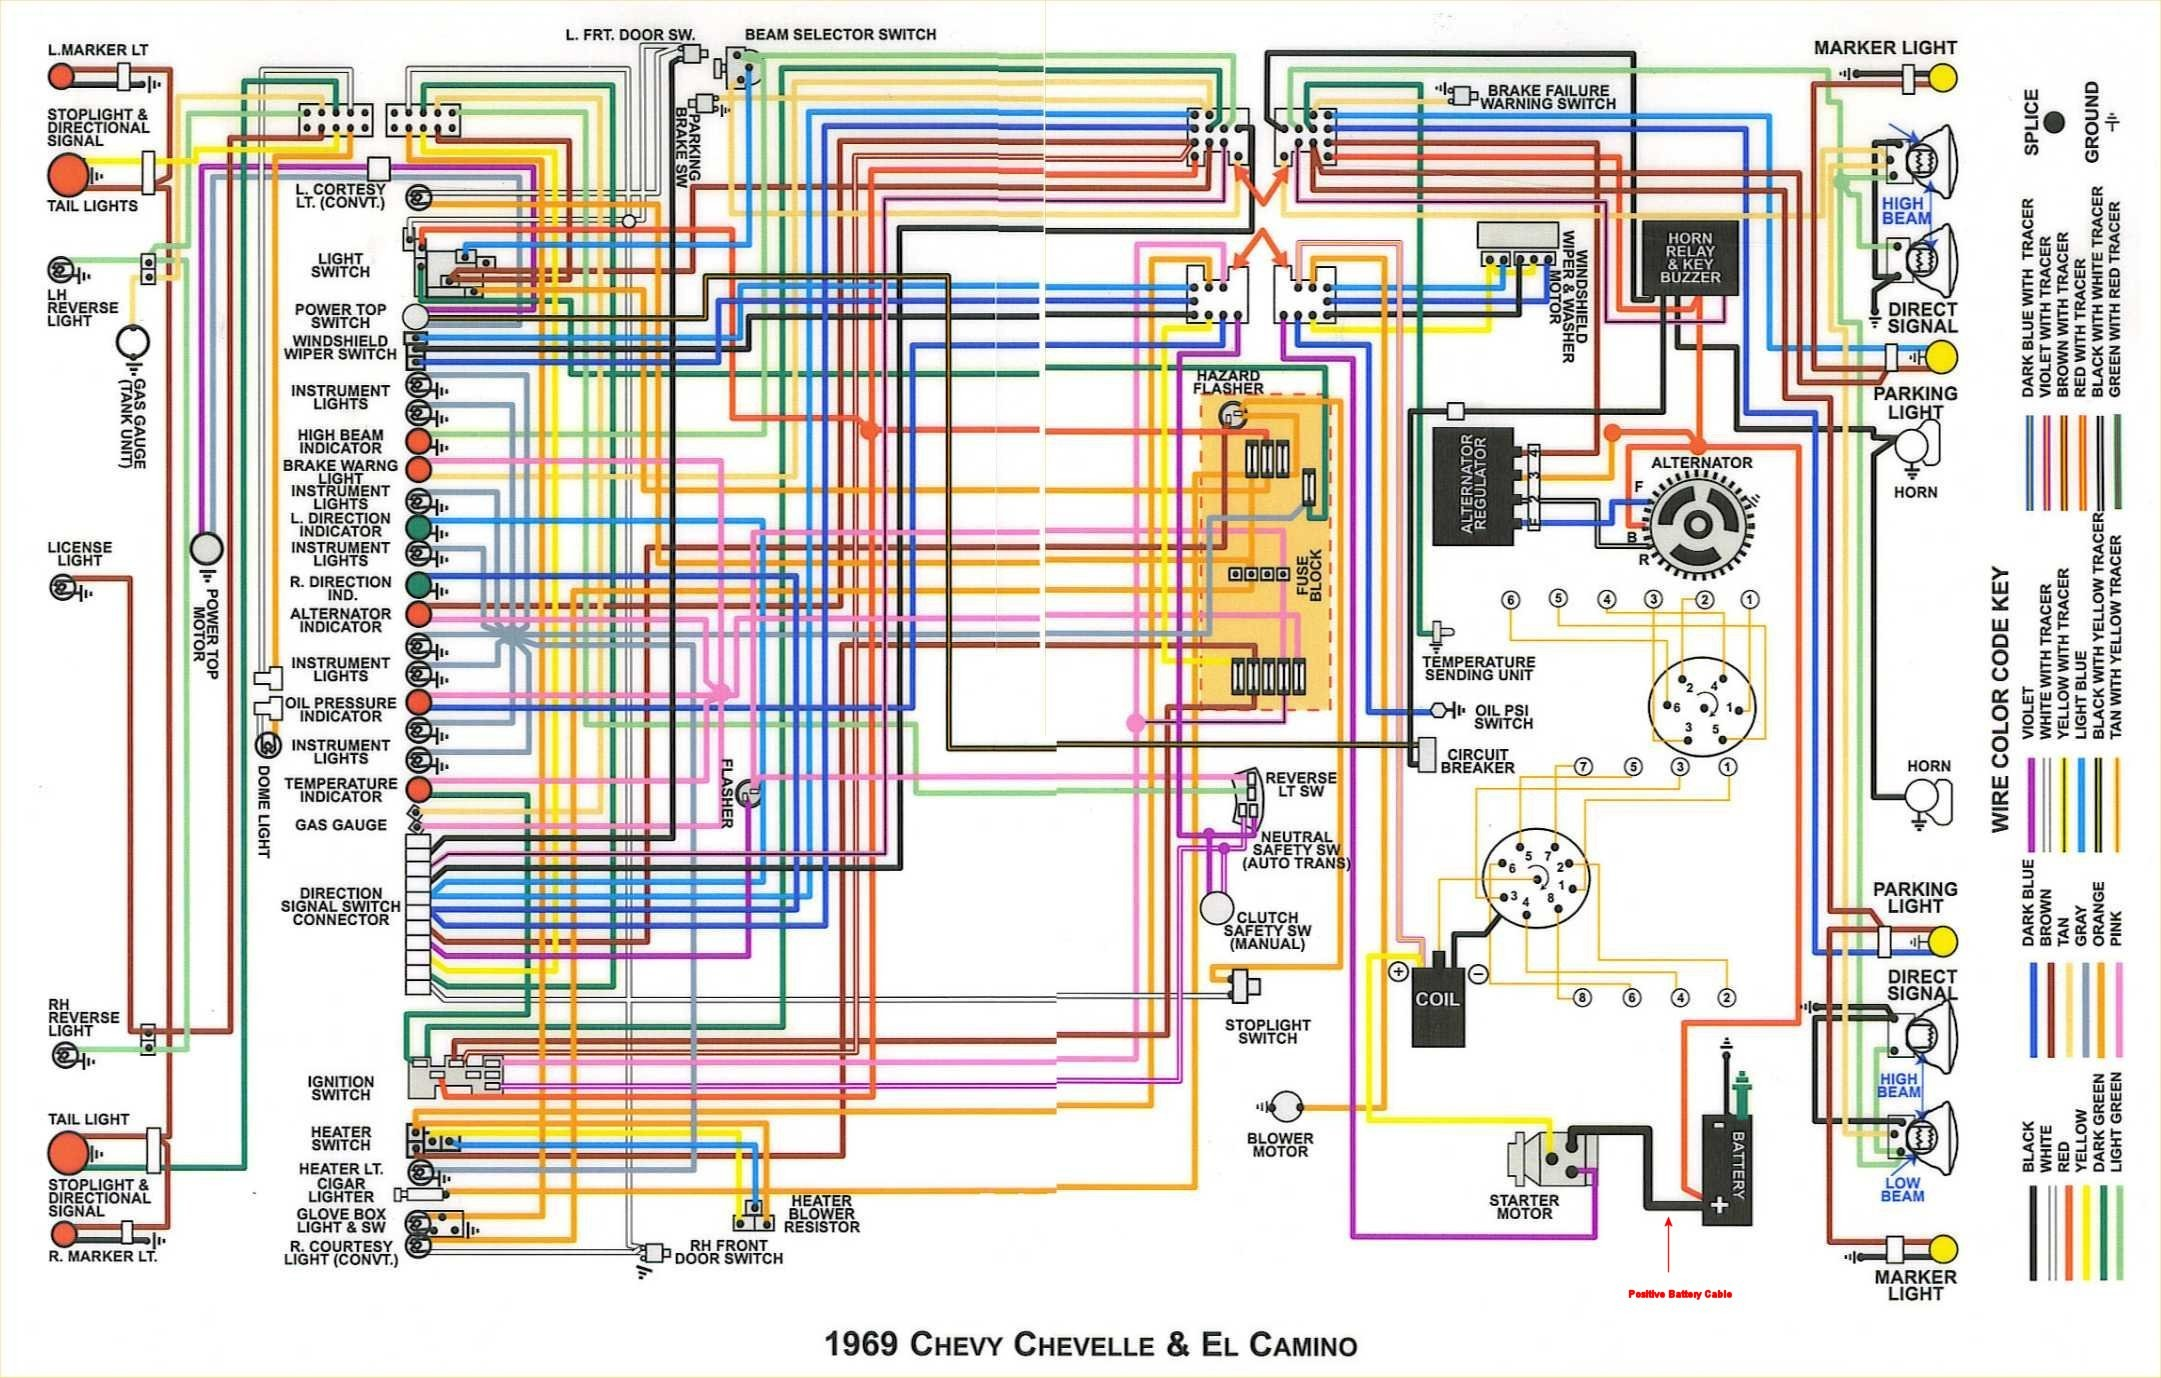 1967 chevelle wiring harness wiring diagram1968 chevelle trunk wiring harness image wiring diagram blog1968 chevelle trunk wiring harness image 14 5